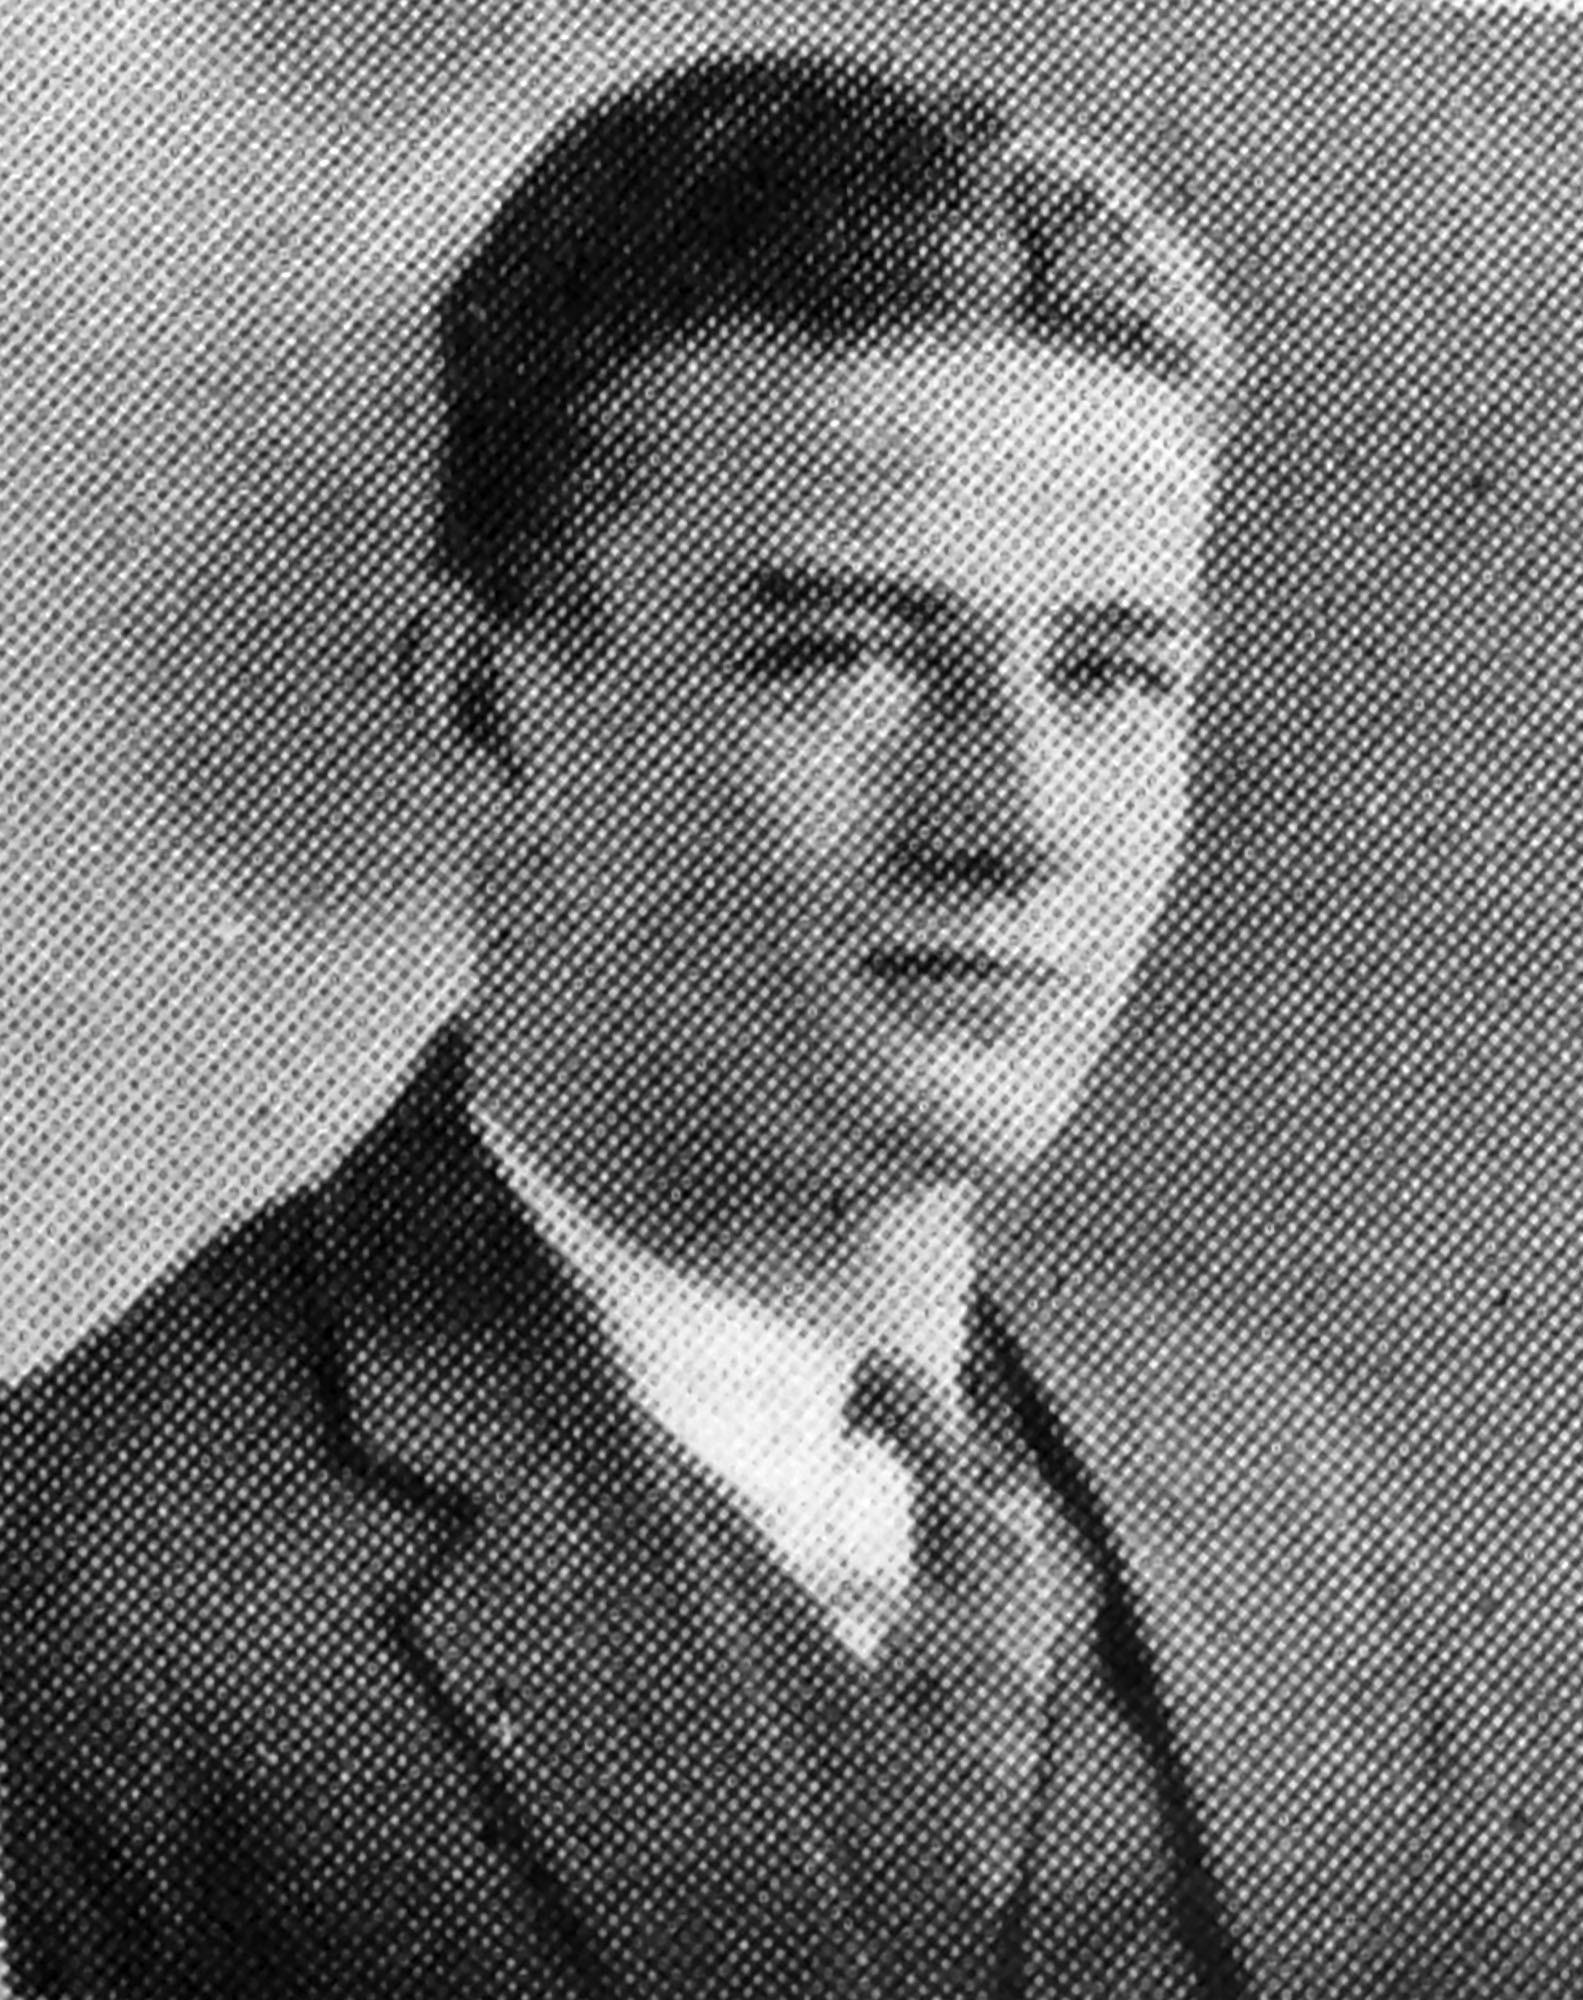 John Wayne's senior photo in the 1925 yearbook from Glendale High School, where he was known as Marion Morrison.